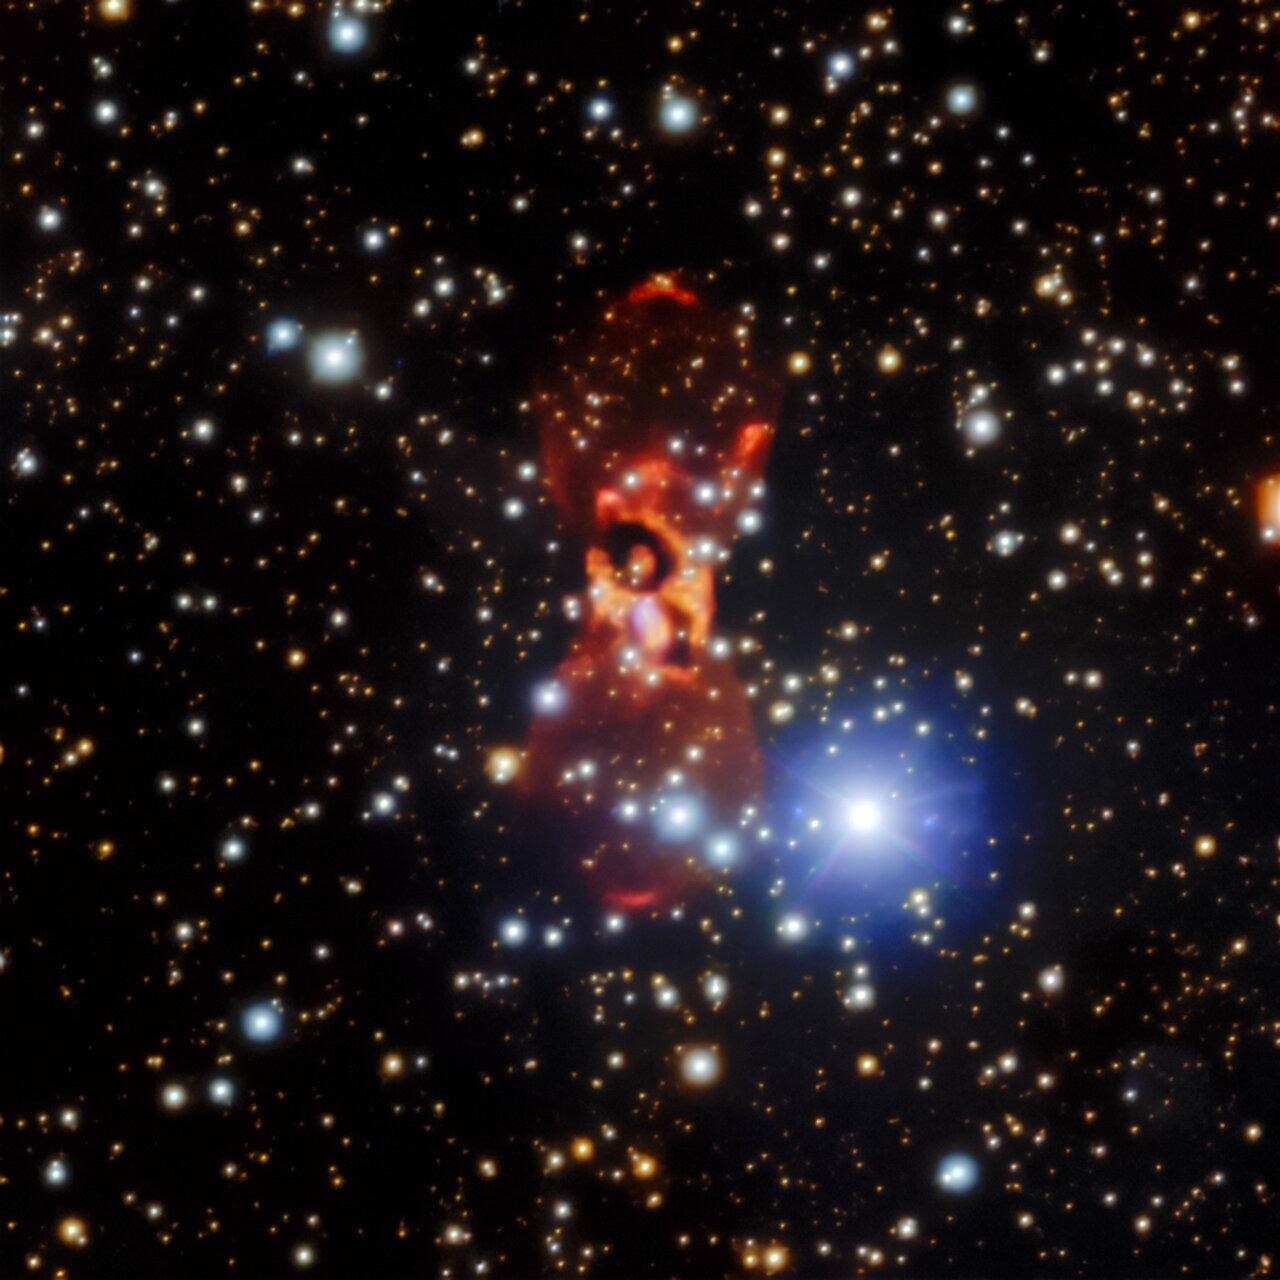 Study Finds CK Vulpeculae Nebula is Farther than Previously Thought